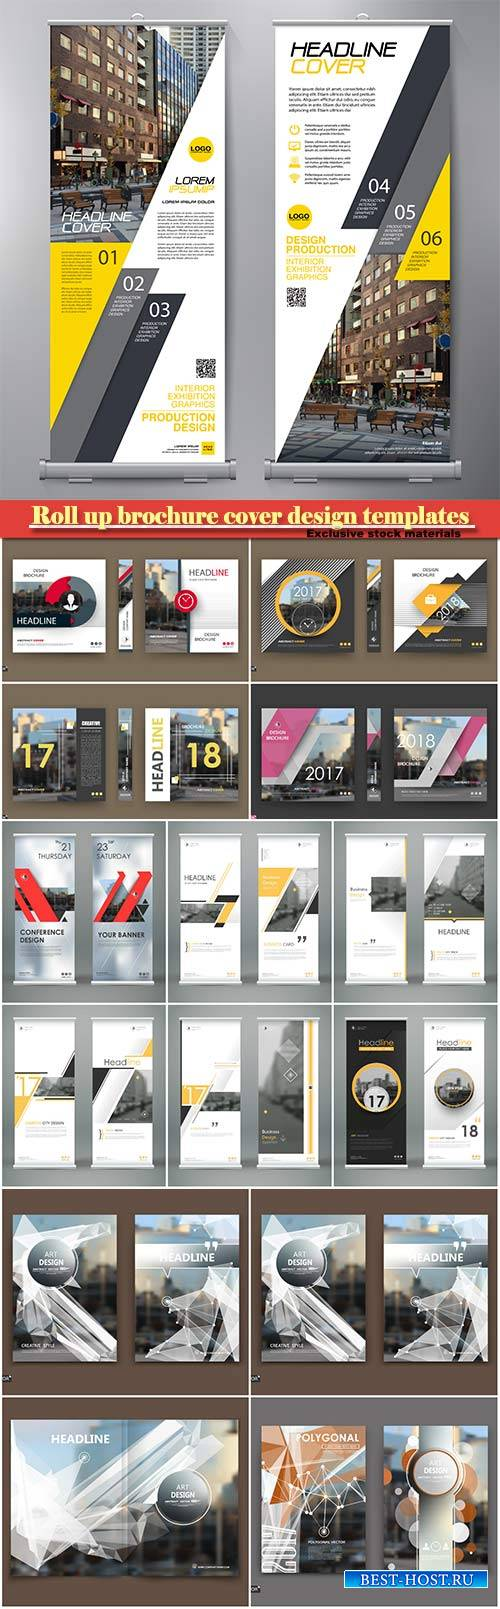 Roll up brochure cover design templates